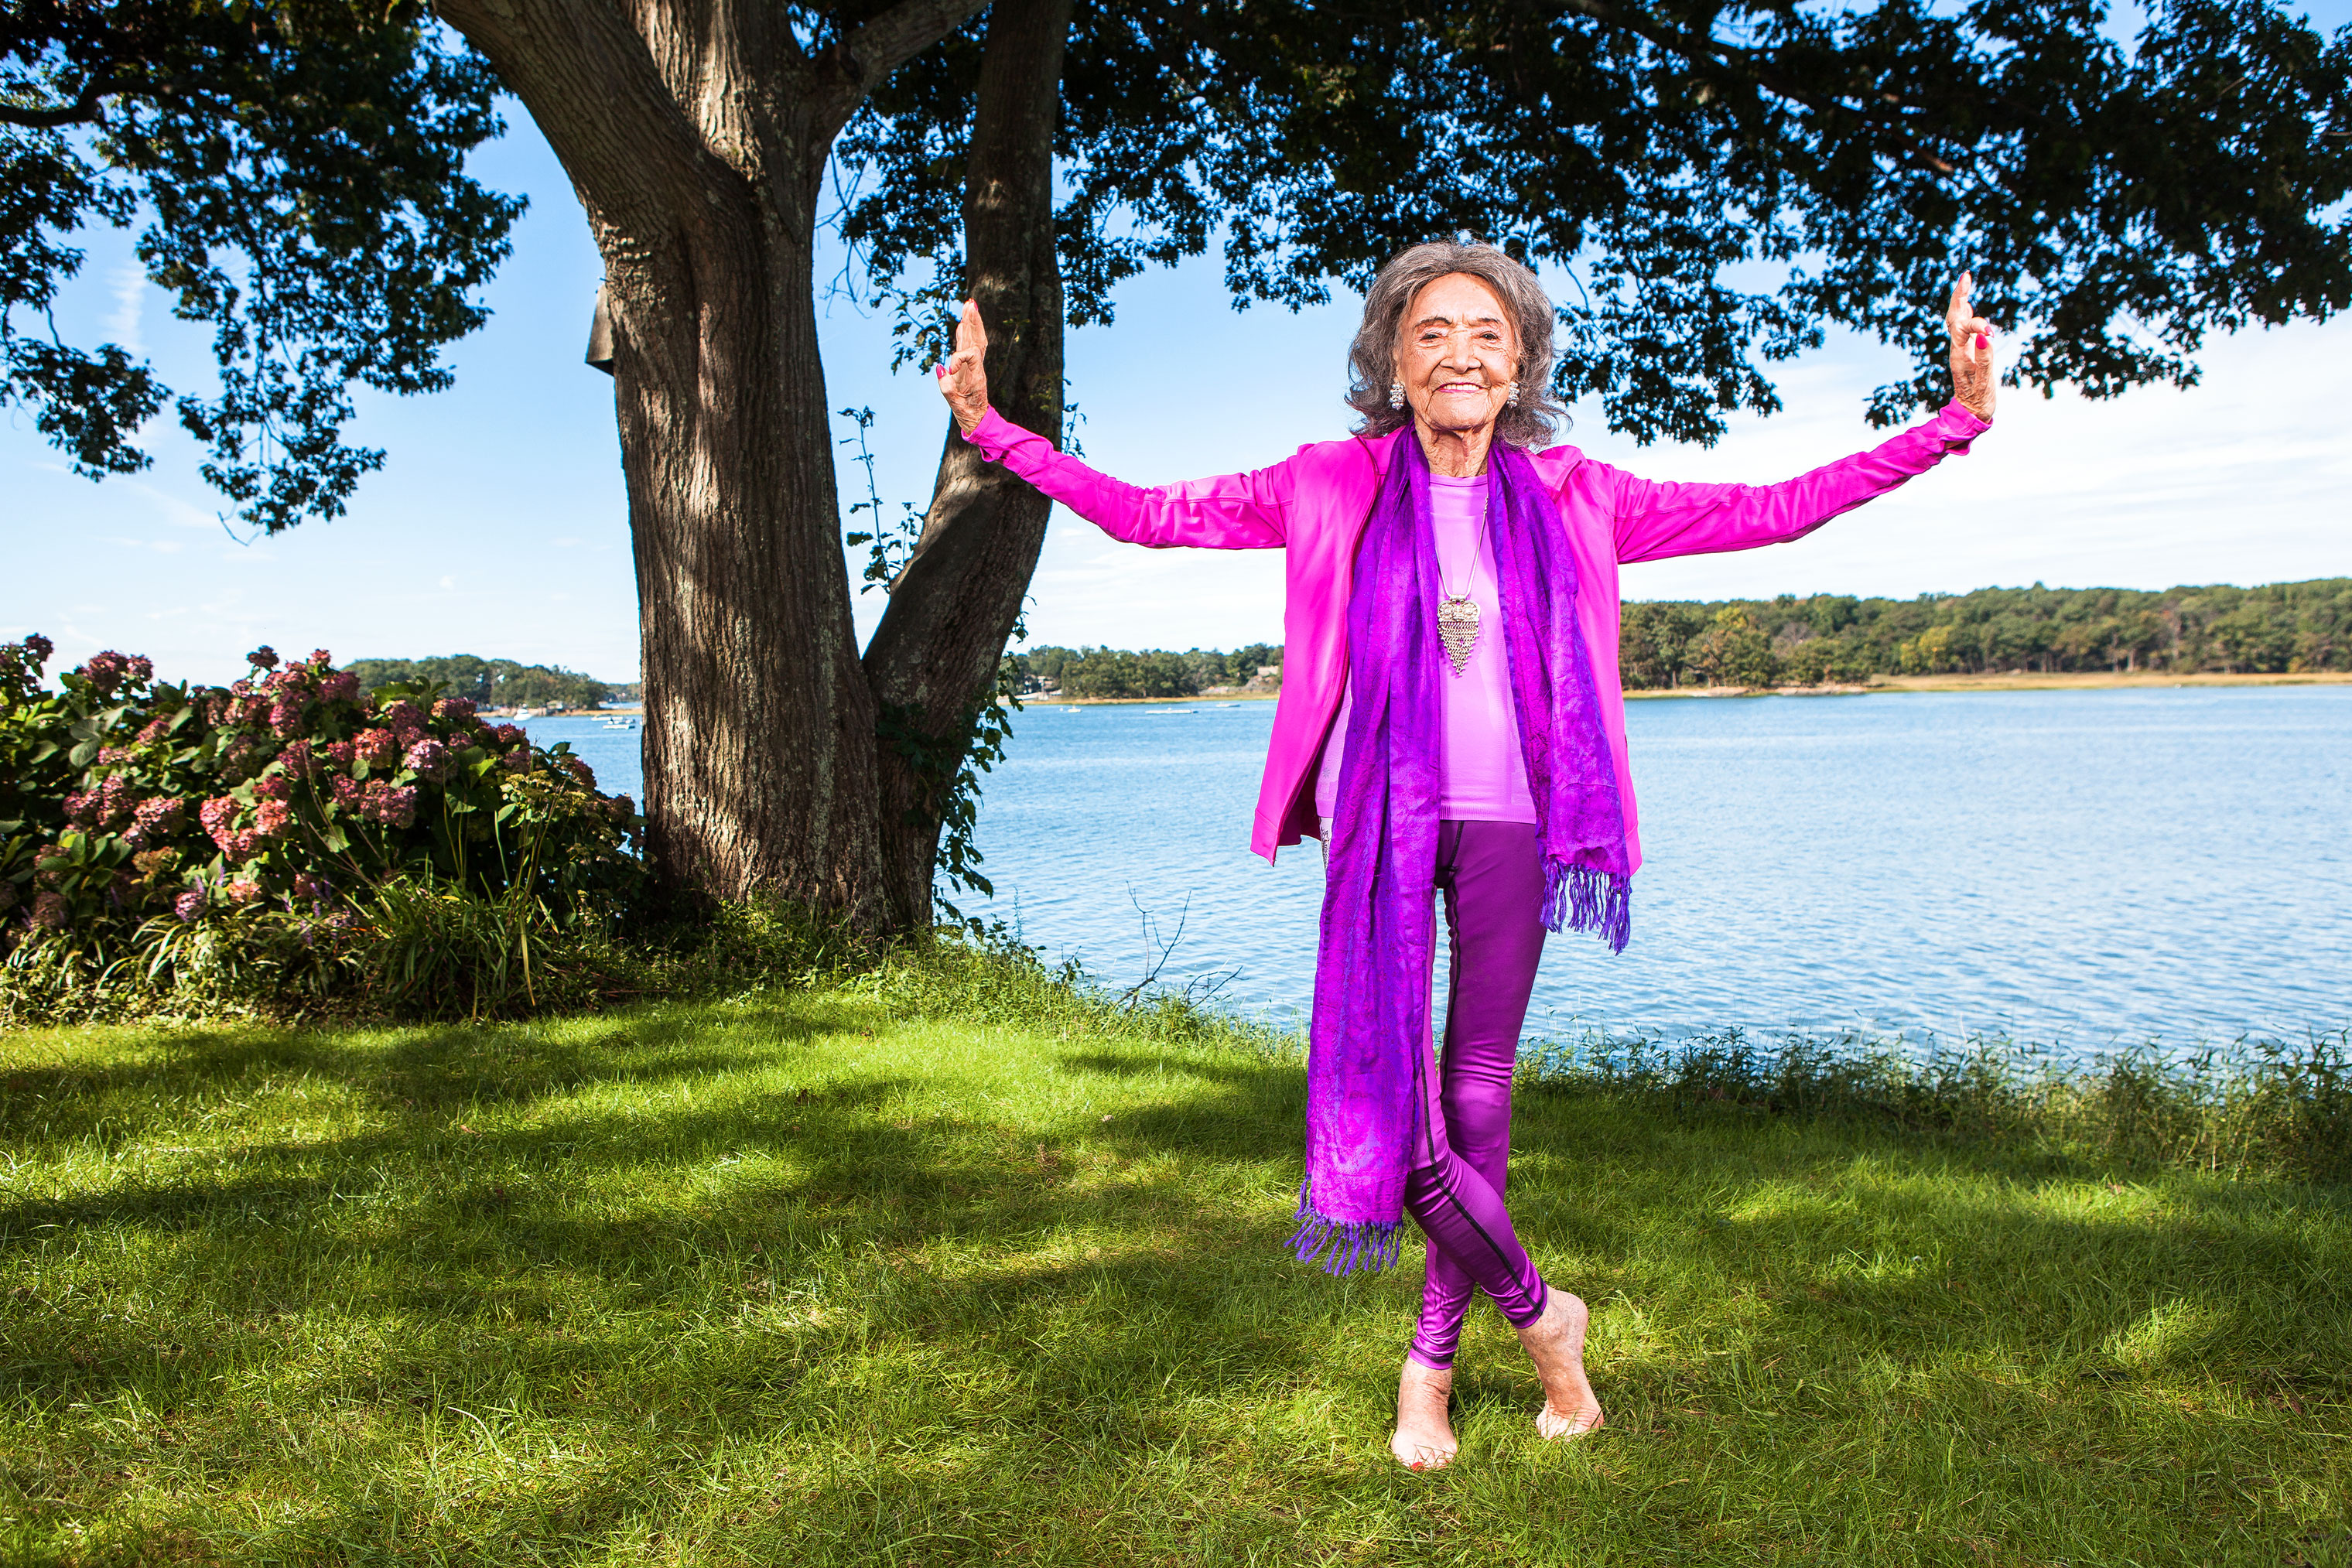 Tao Porchon-Lynch at Wainwright House, a yoga, health, and healing center in Rye, N.Y.